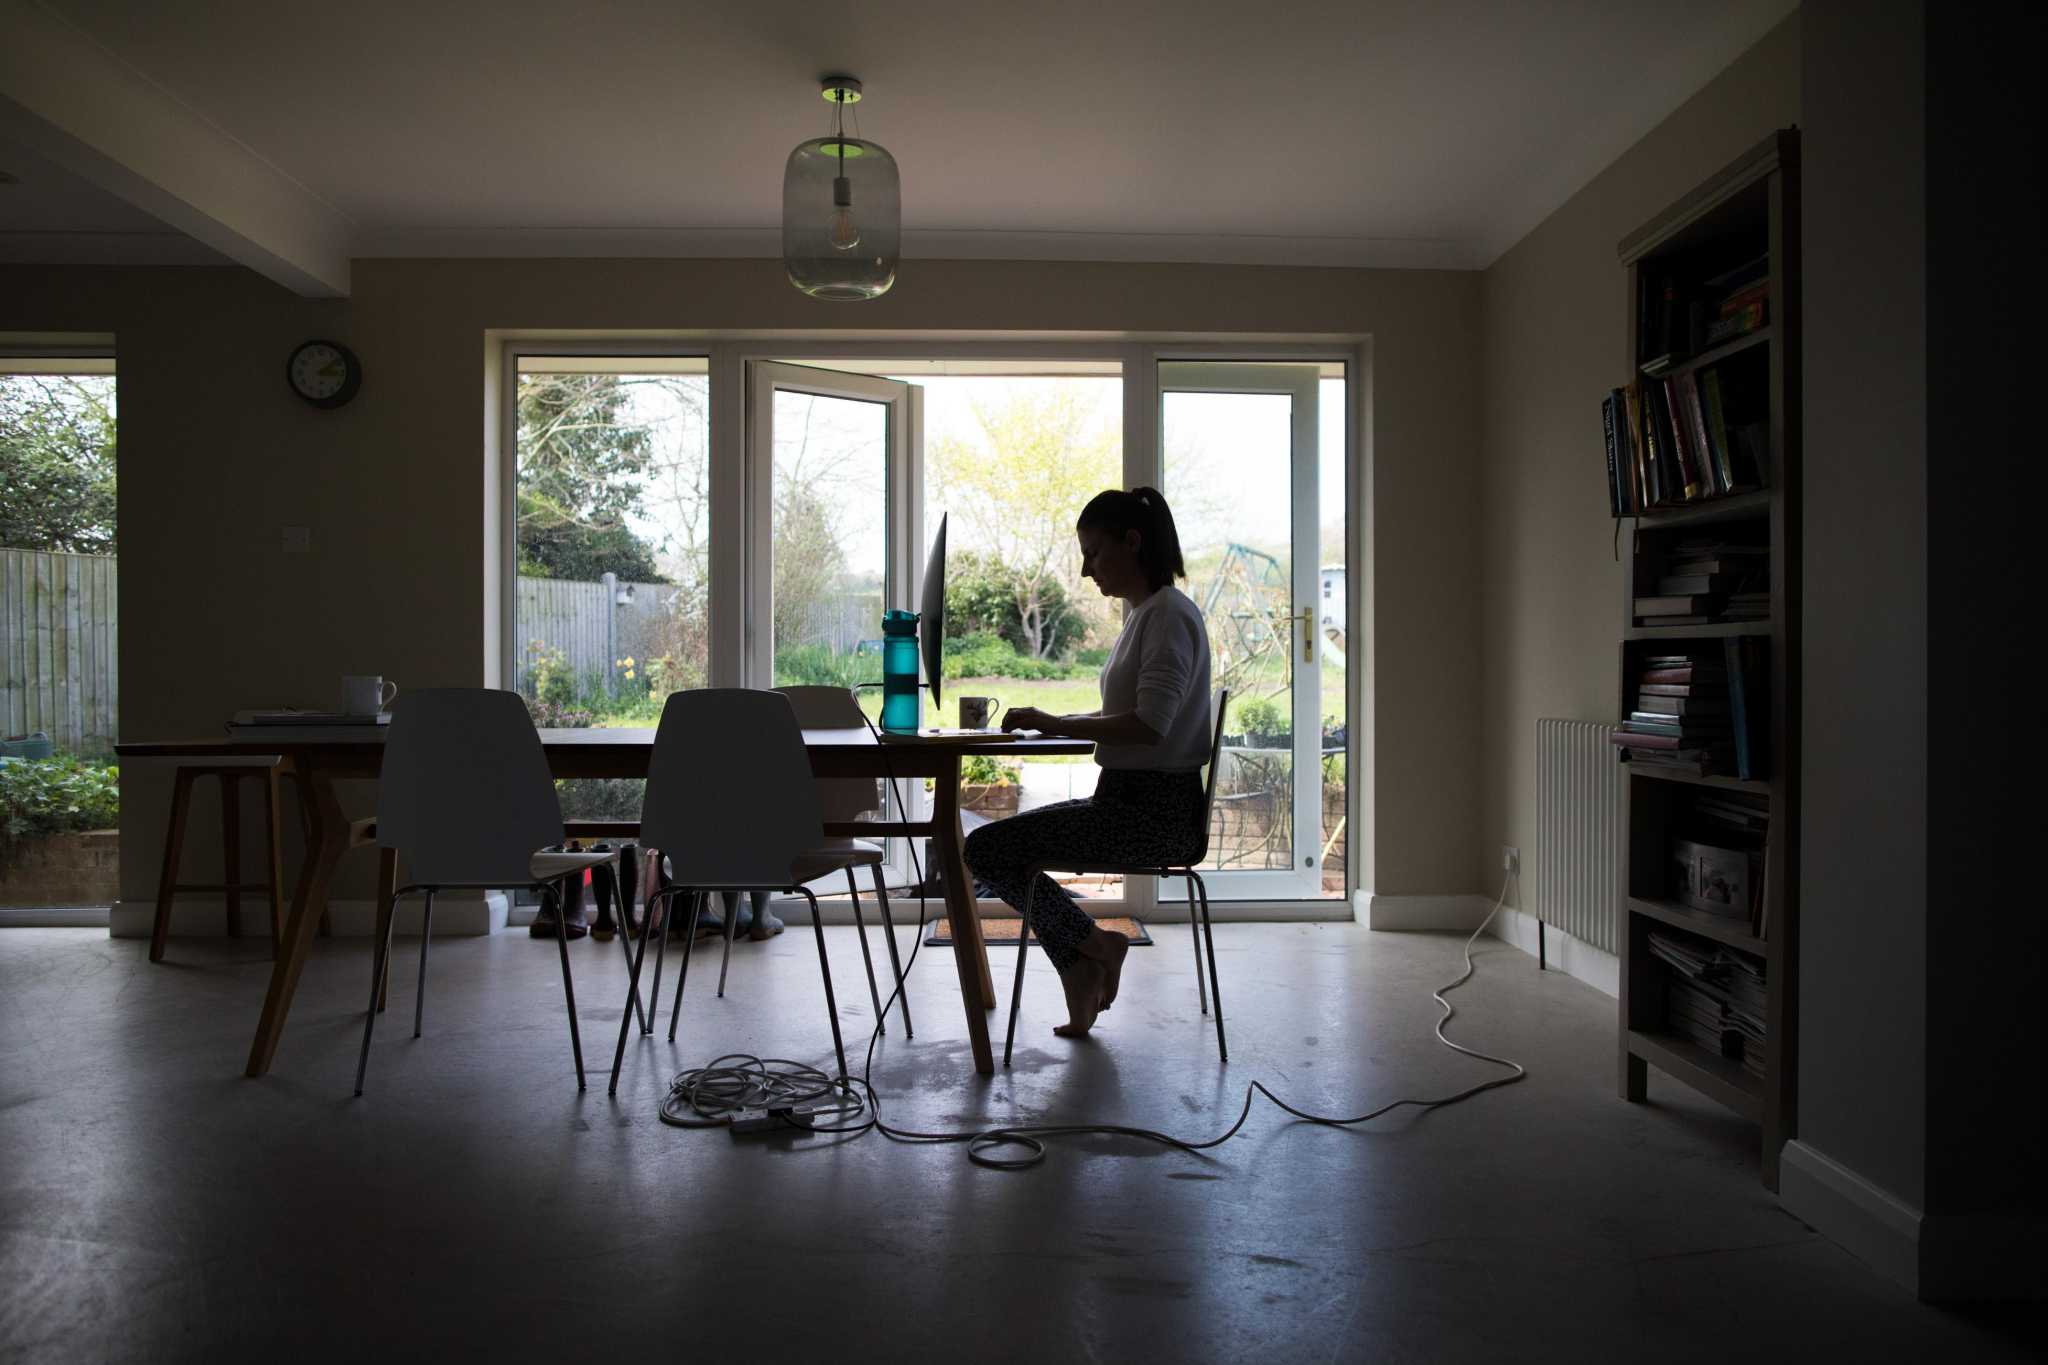 Working at home can be tough. Here's a plan